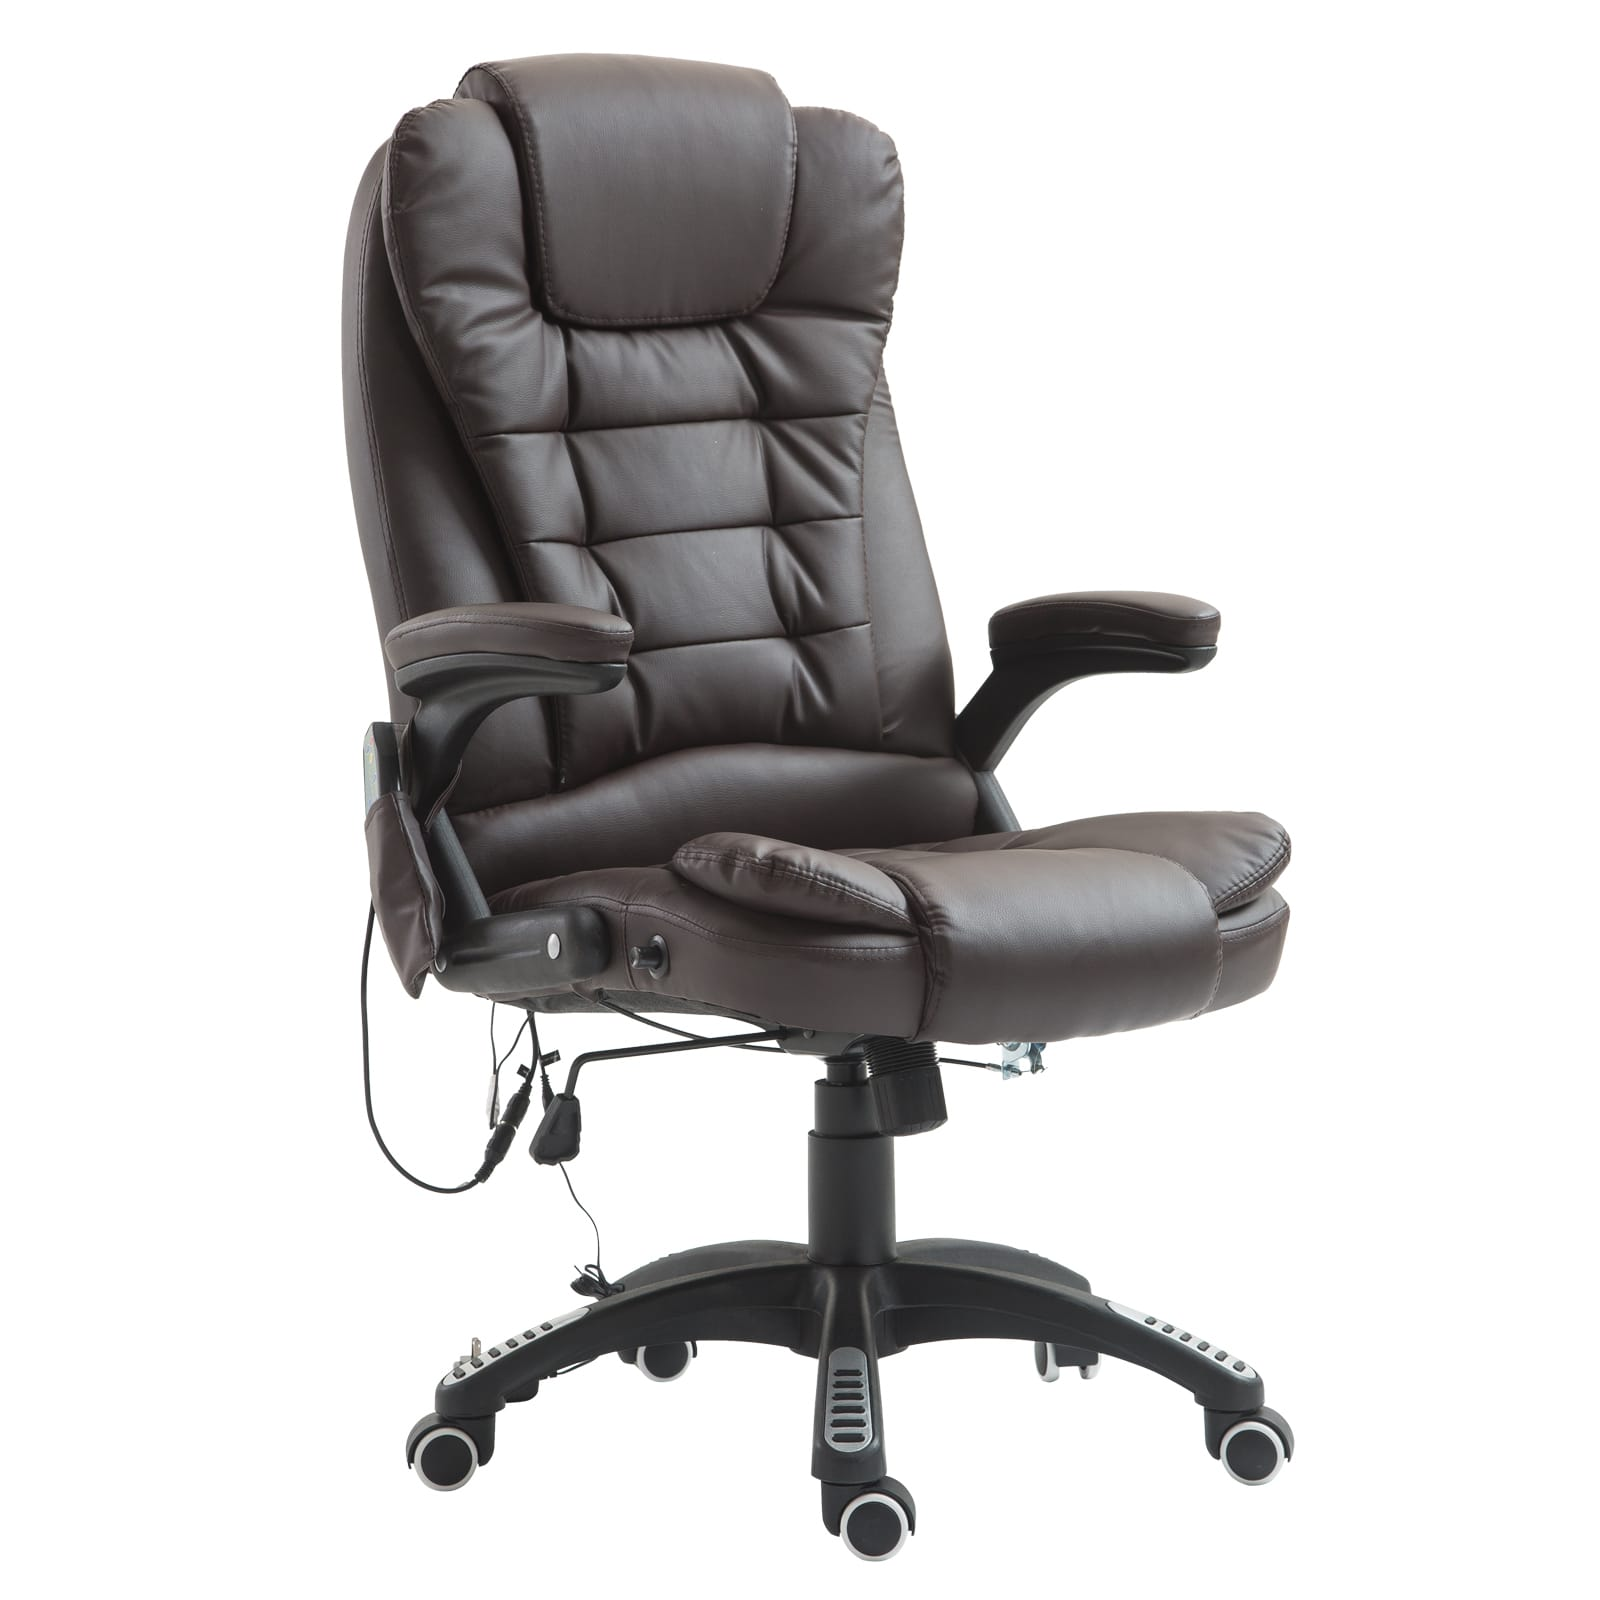 HomCom PU Leather Executive Ergonomic Heated Massage Office Chair - $109.99 + Free Shipping